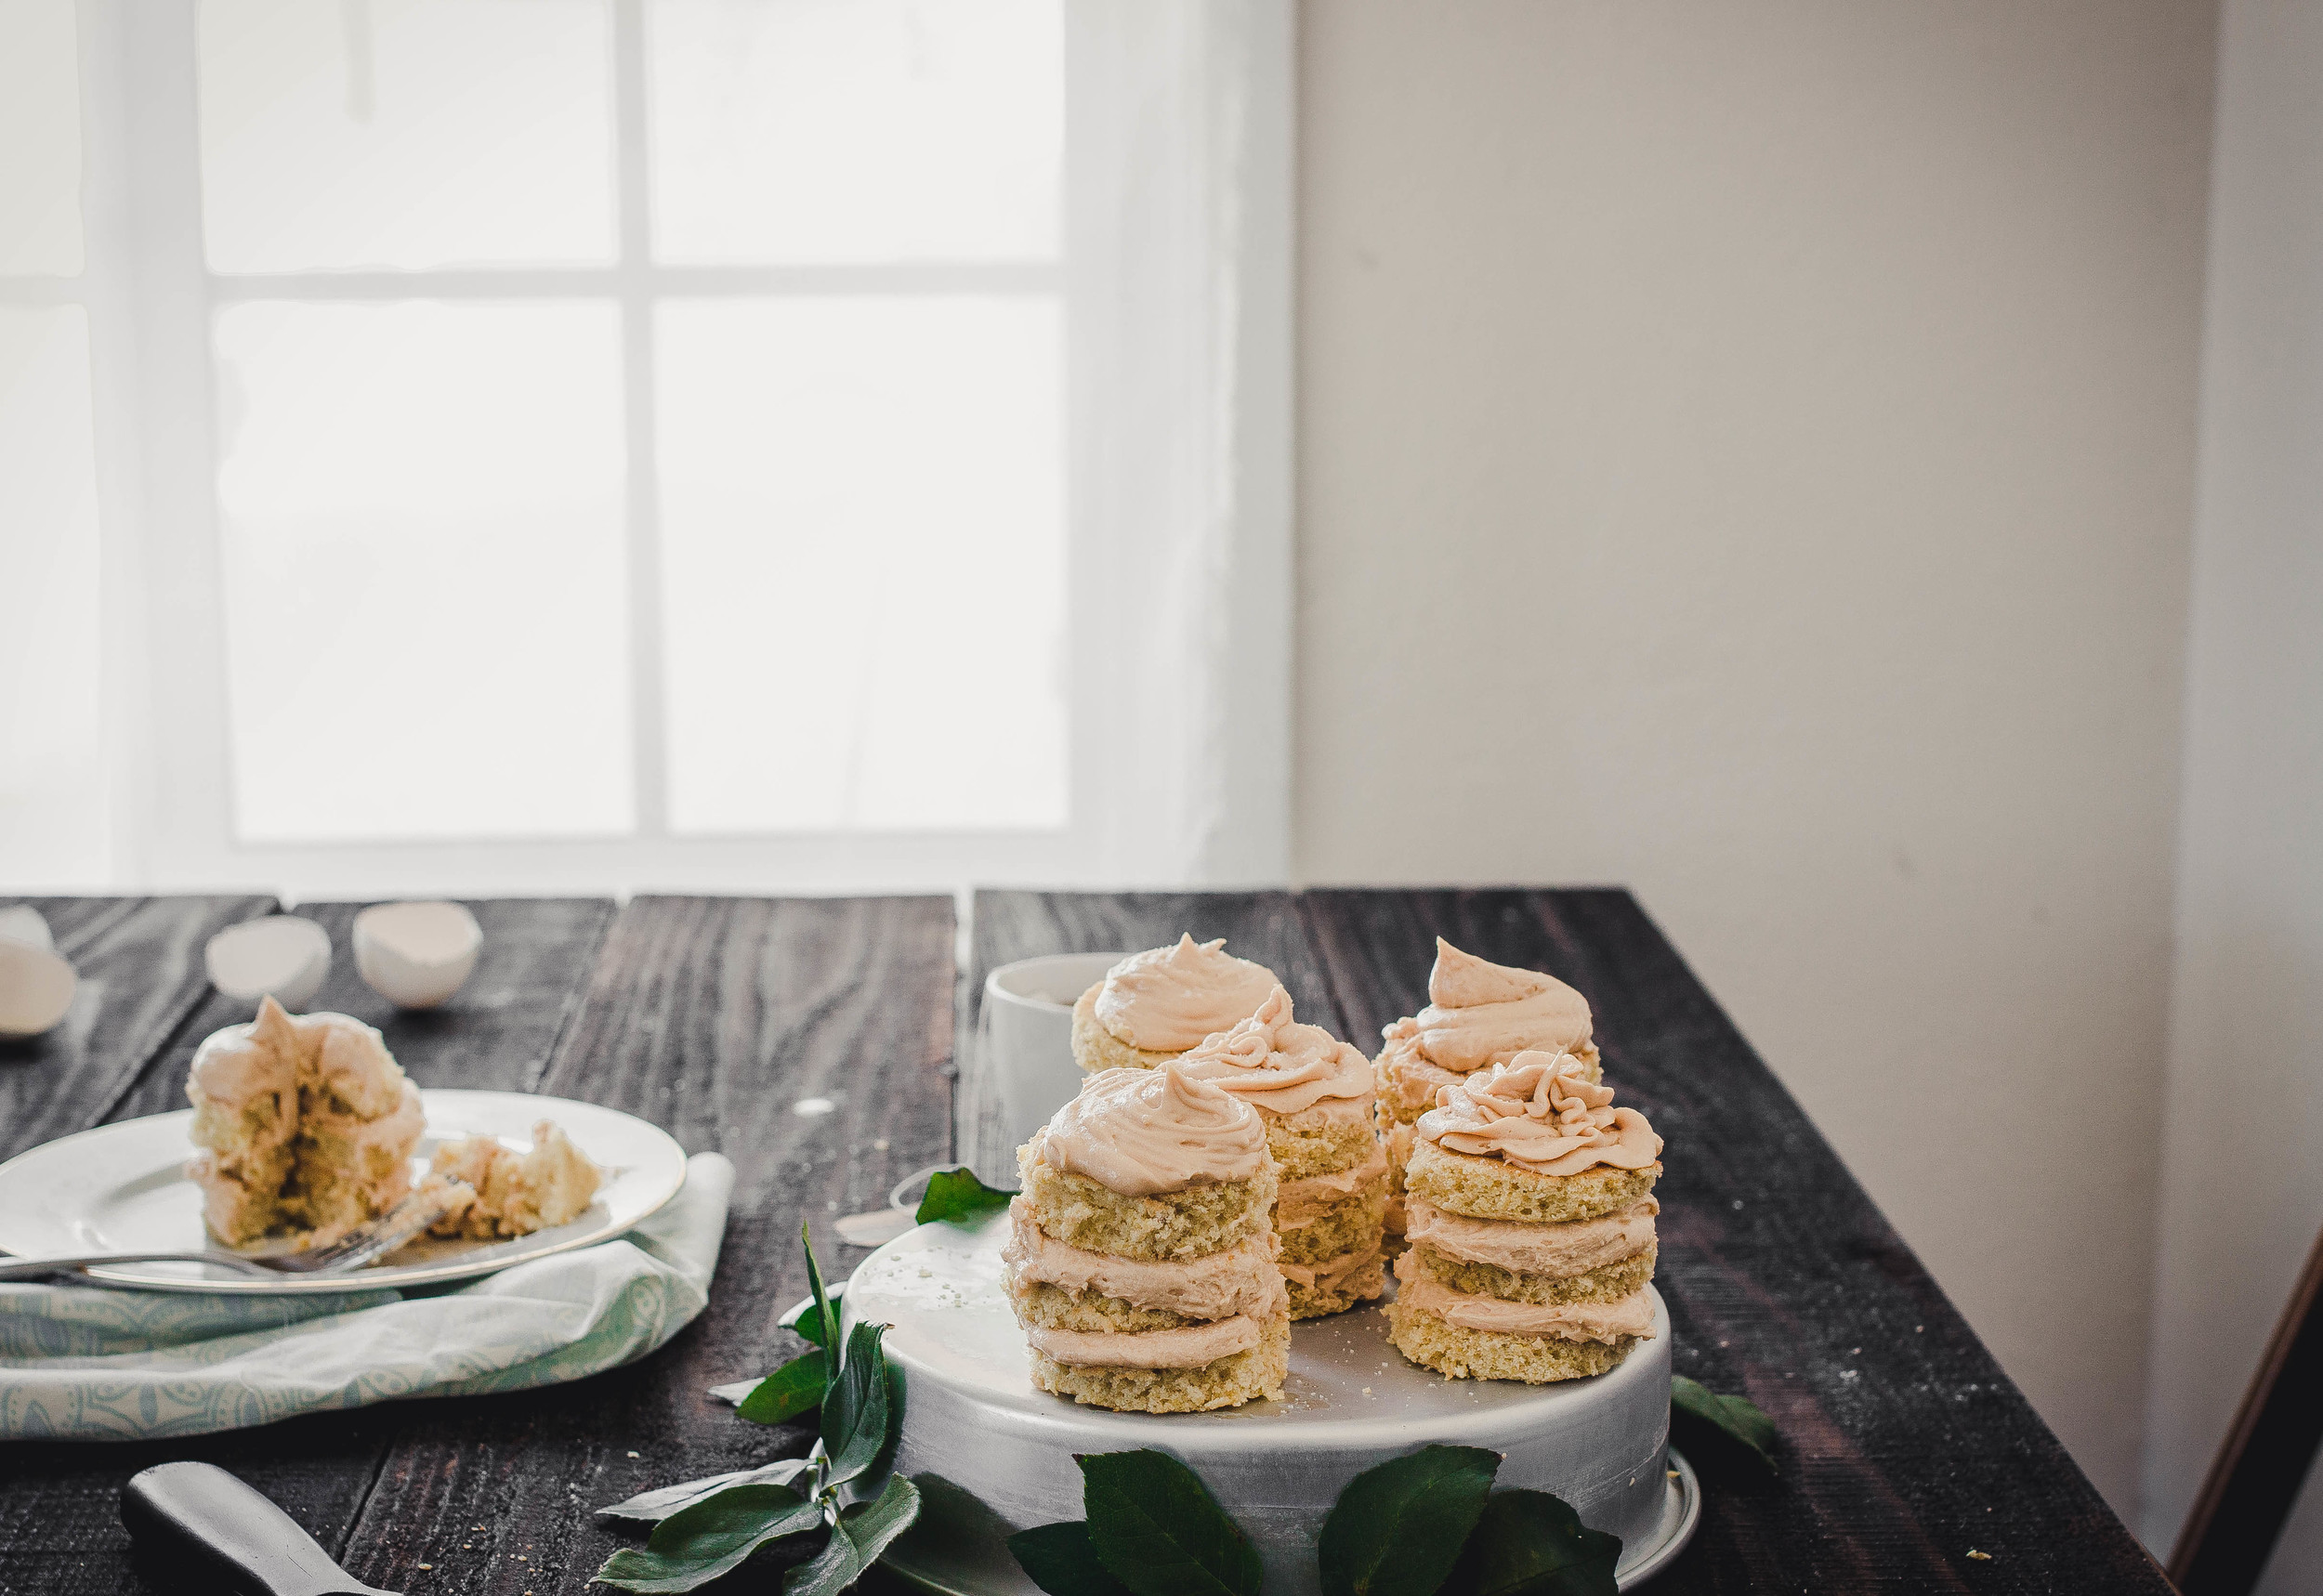 Table Setup for Mini Cakes with Dulce de Leche Buttercream Frosting | by fit for the soul